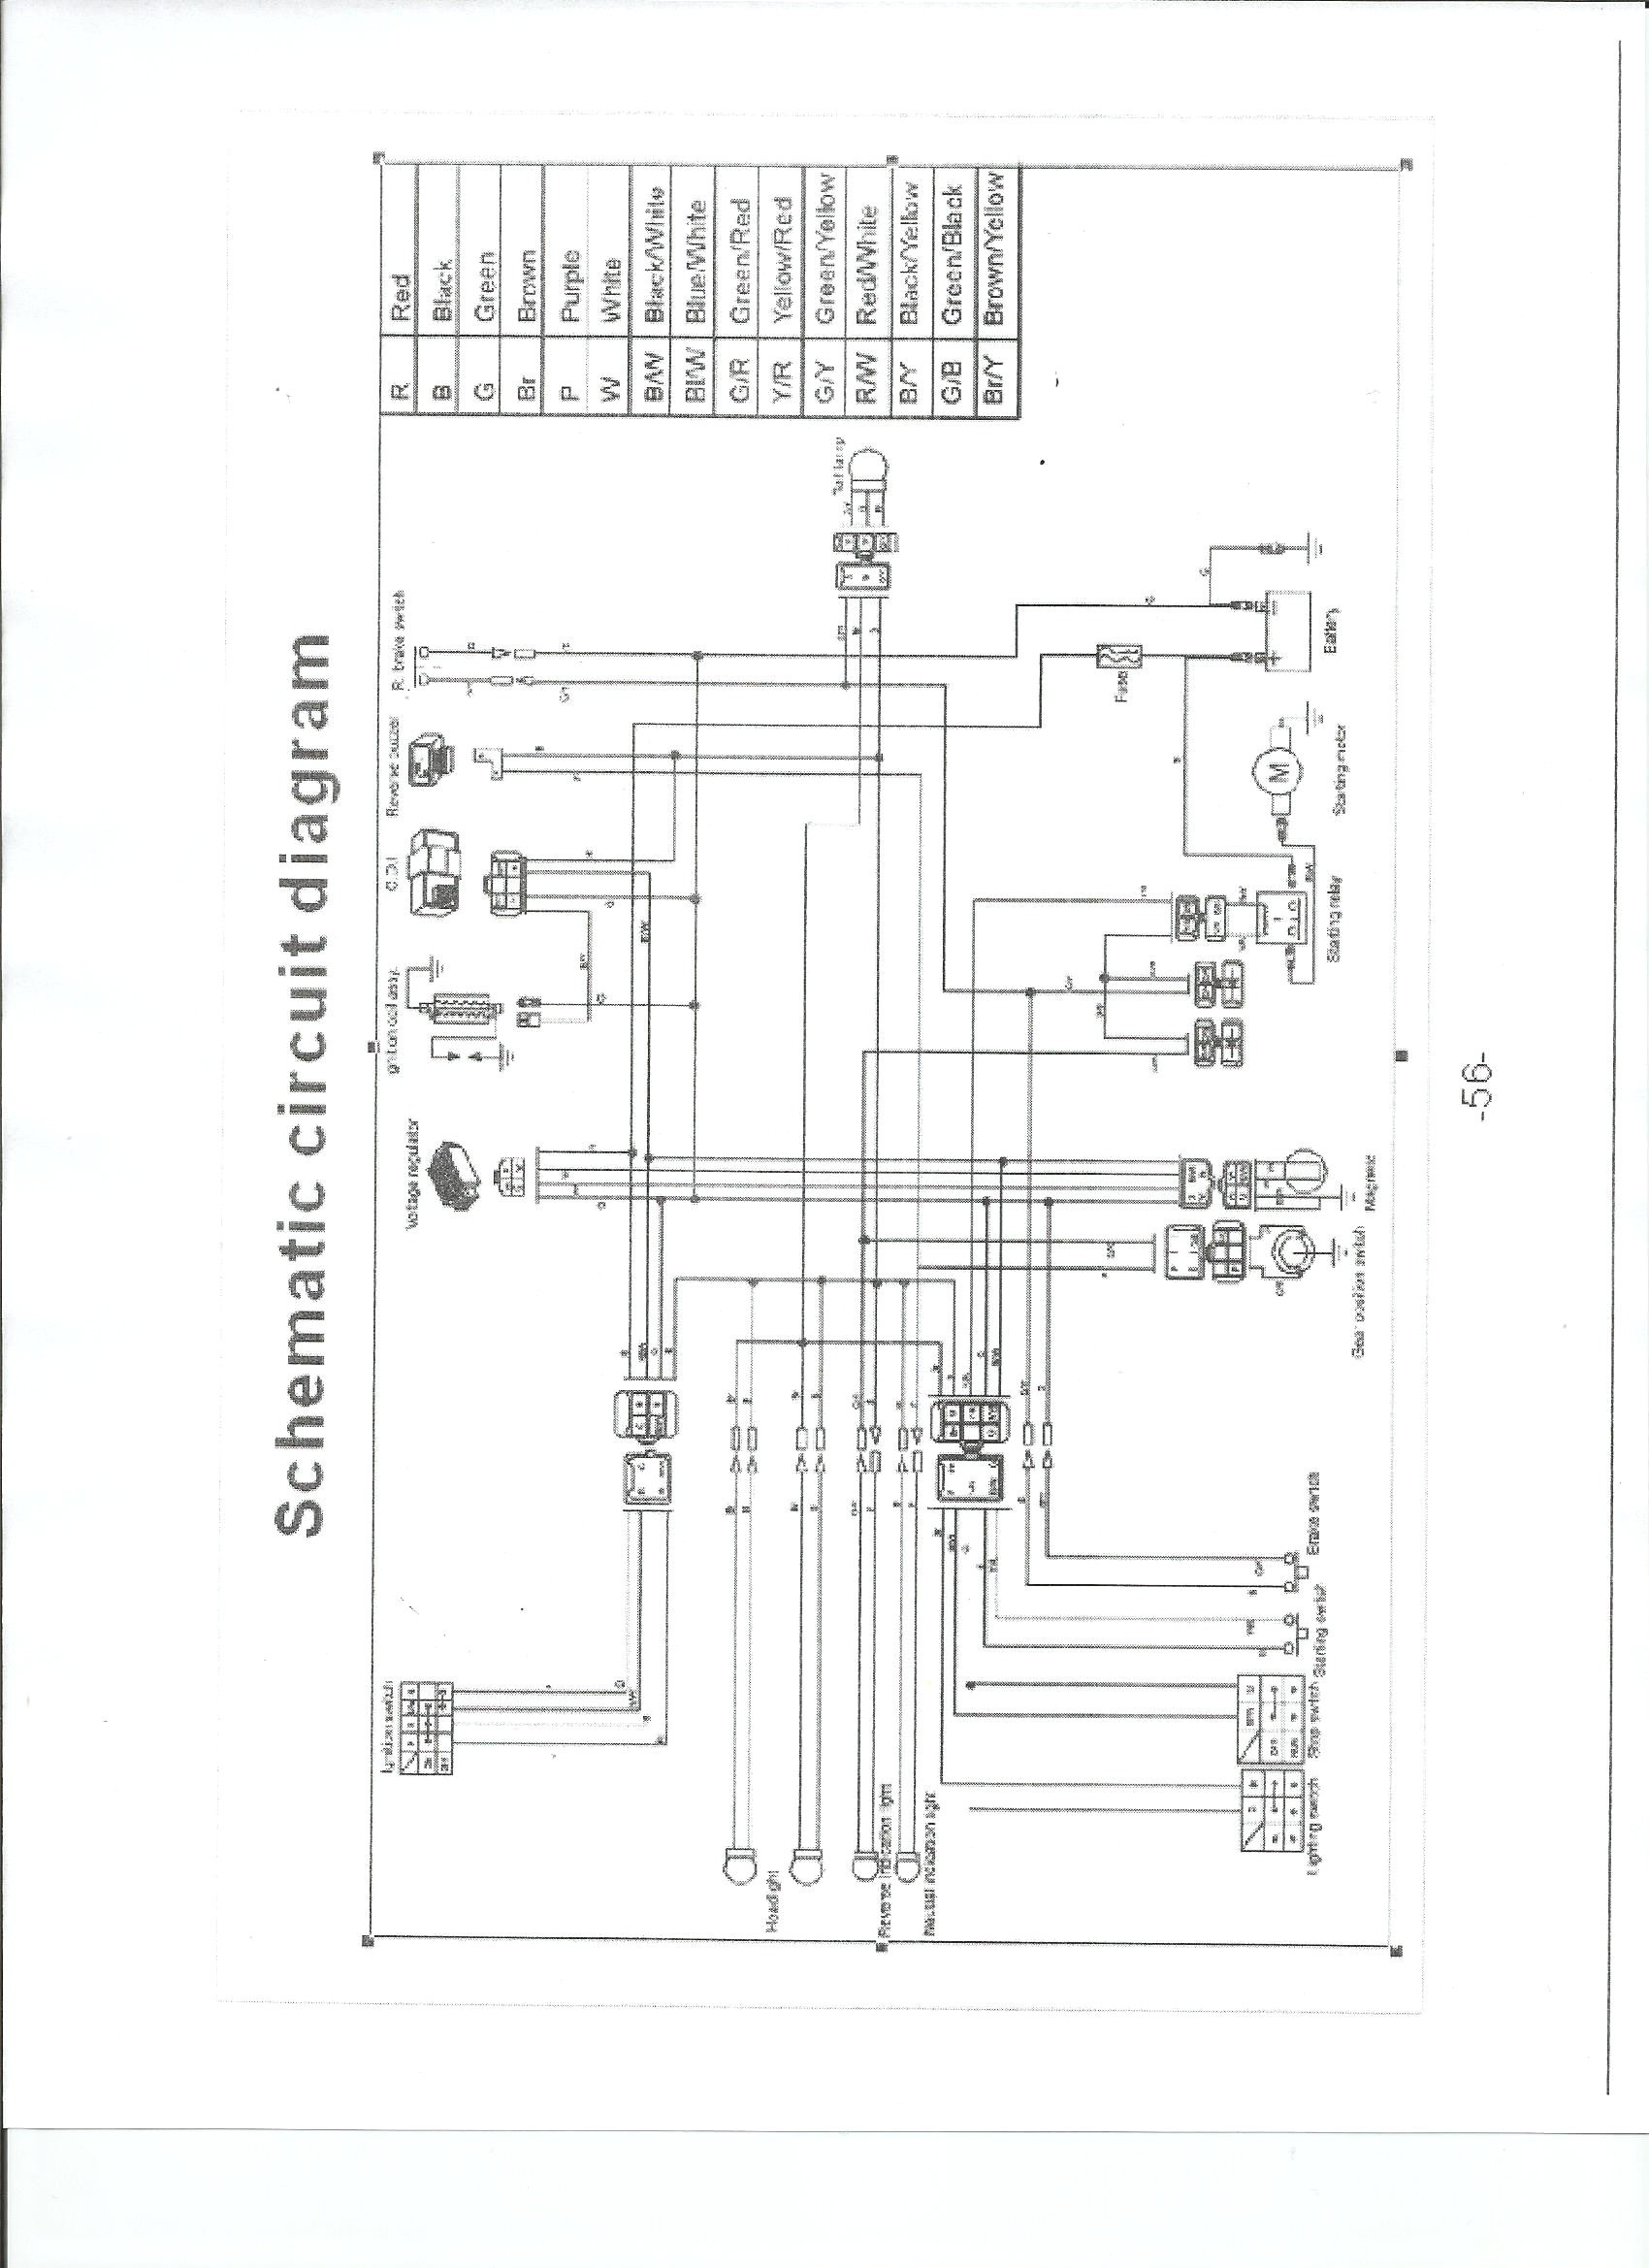 50cc Scooter Wiring Diagram Coil Auto Electrical 1983 Ford F 250 Fuel Filter Related With